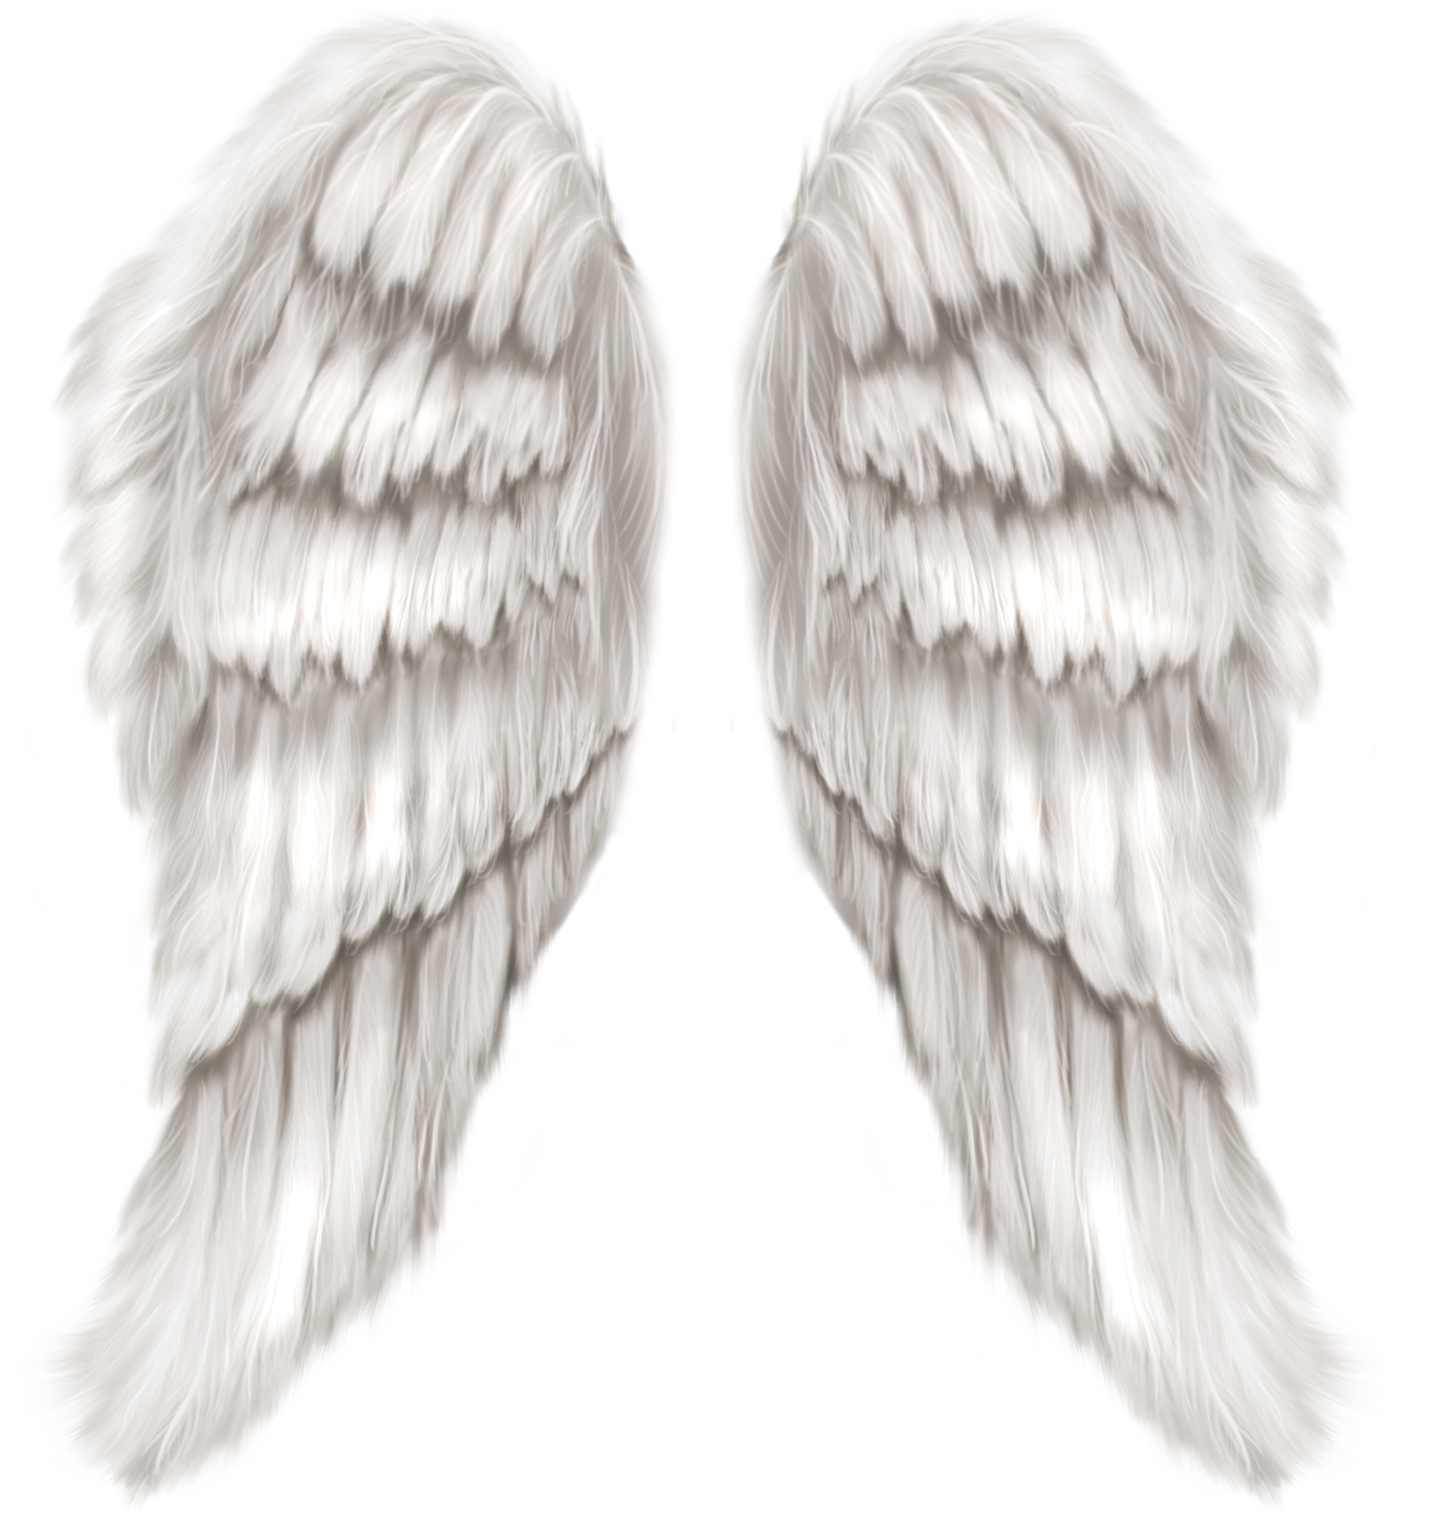 White angel wings transparent. Heaven clipart wing